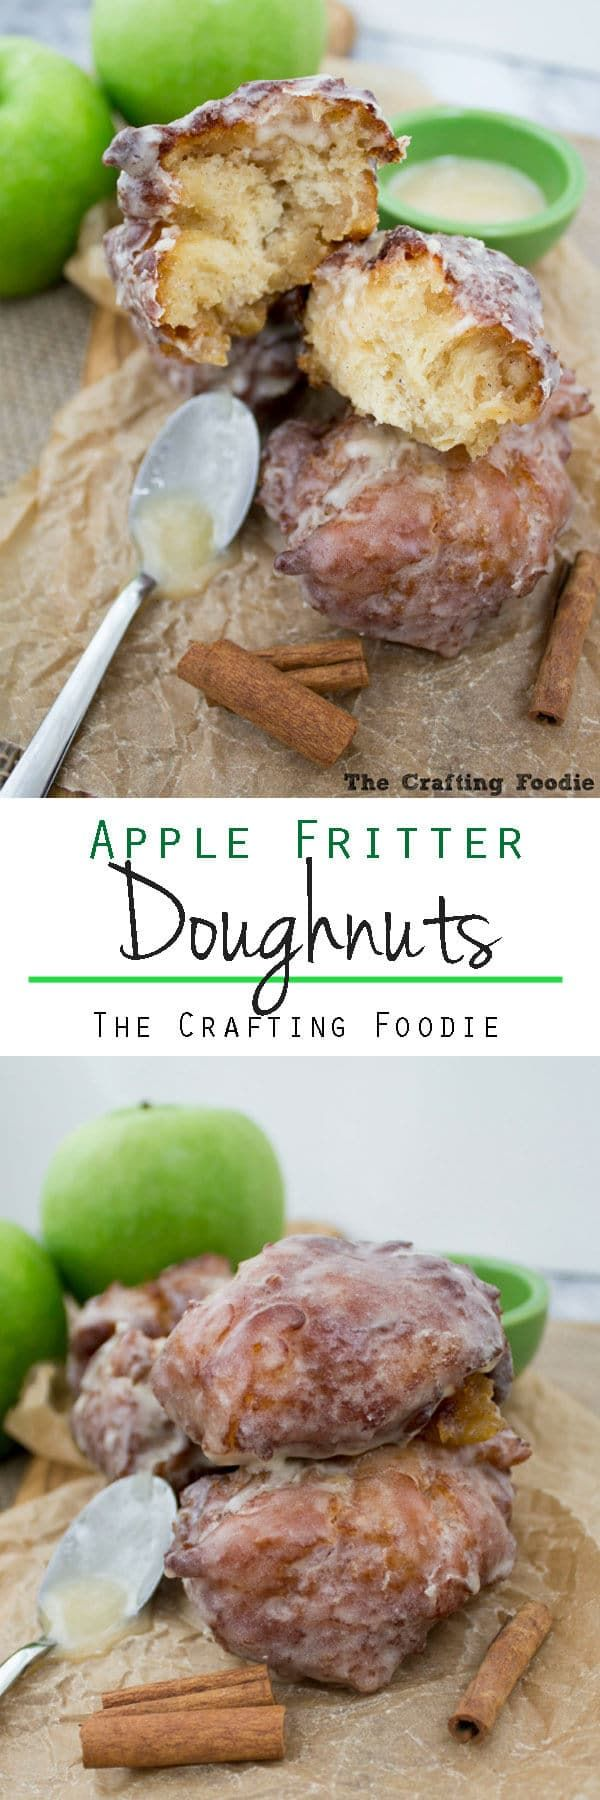 These Apple Fritter Doughnuts are crisp on the outside, light and fluffy on the inside and enrobed in a thick, vanilla bean glaze. Apple Fritter Doughnuts {The Best Homemade Apple Fritters Recipe} #applefritters #apple #recipes #donuts